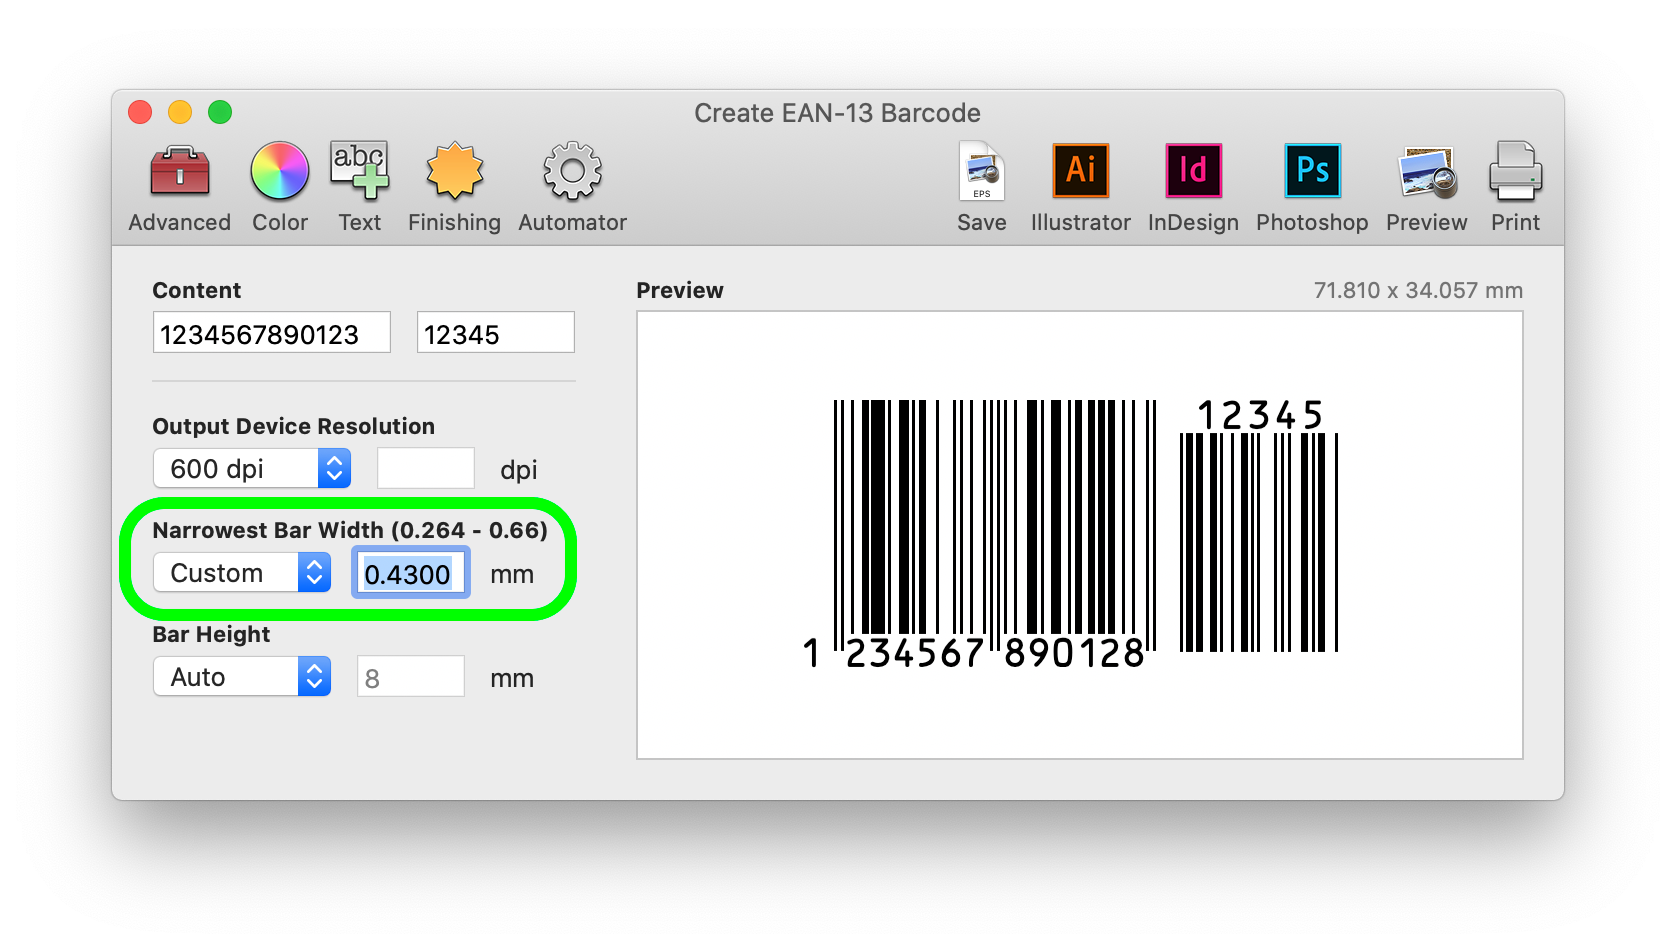 Make adjustments in the Create EAN-13 Barcode window for a better fit